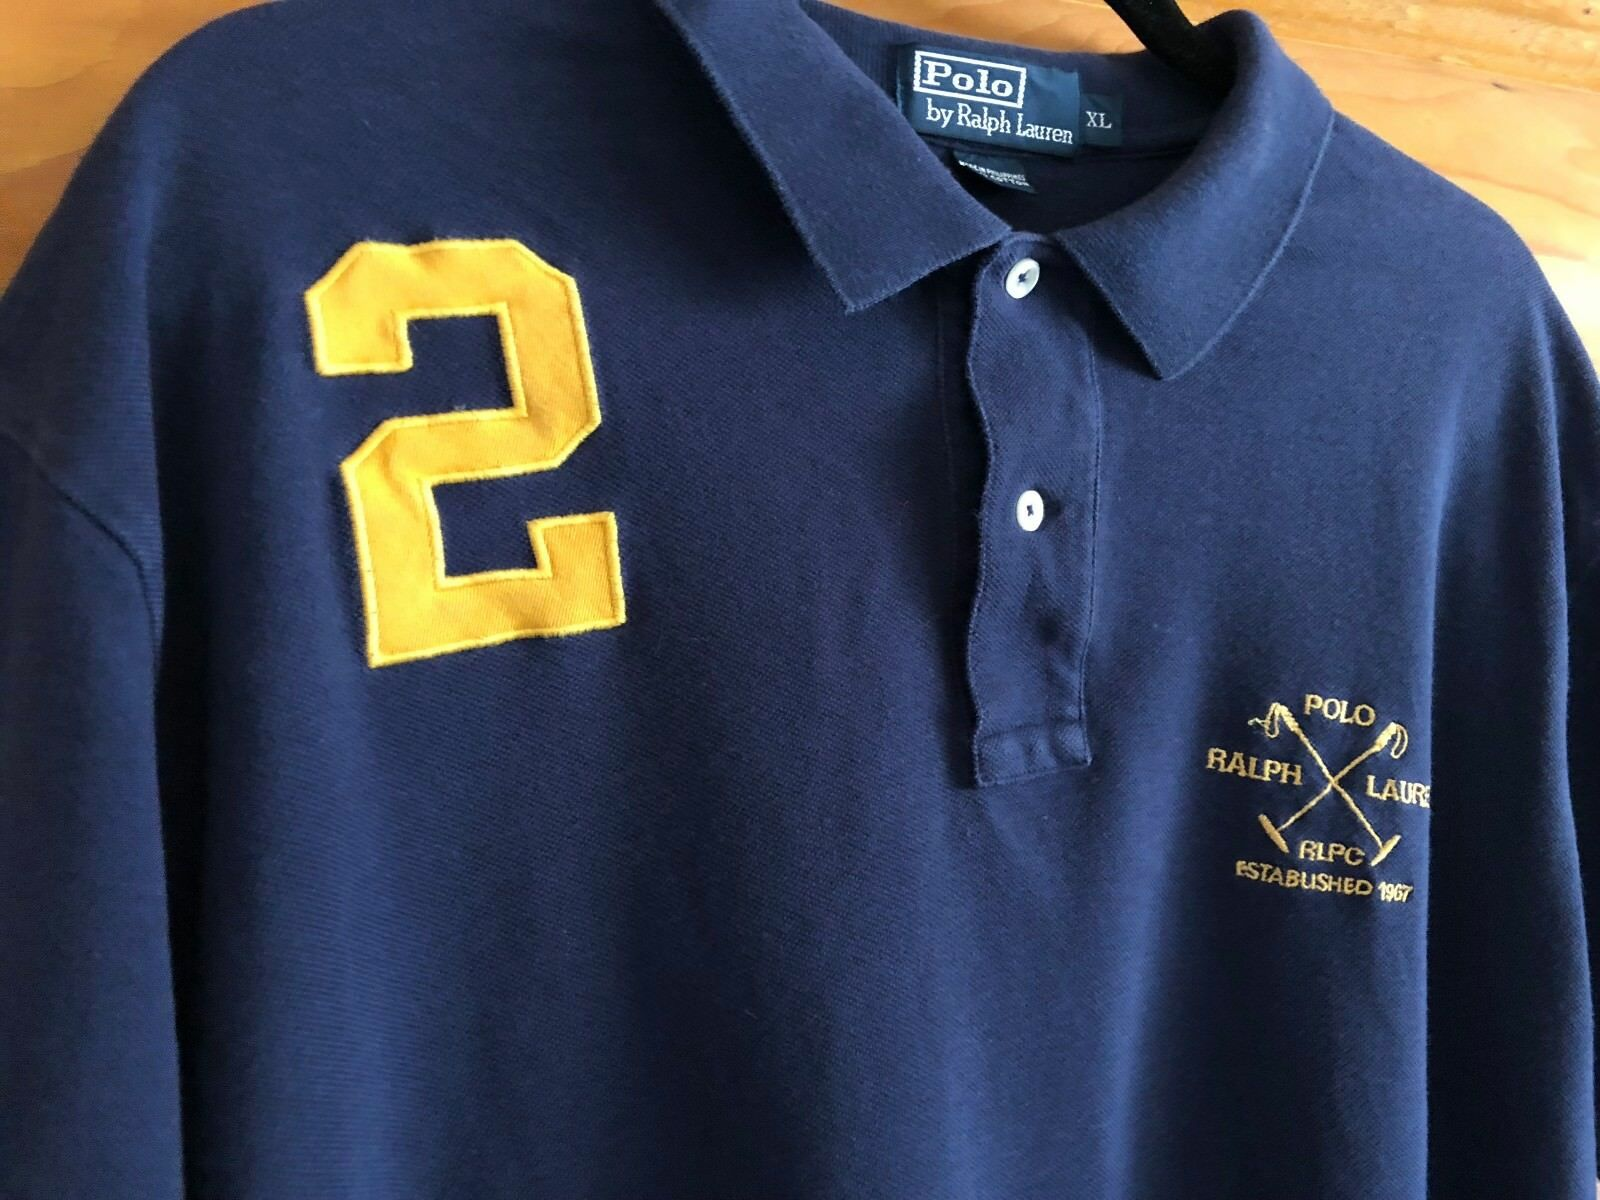 Ralph Lauren bluee Label Rugby Embroidered Polo Shirt Men's Size XL XLarge